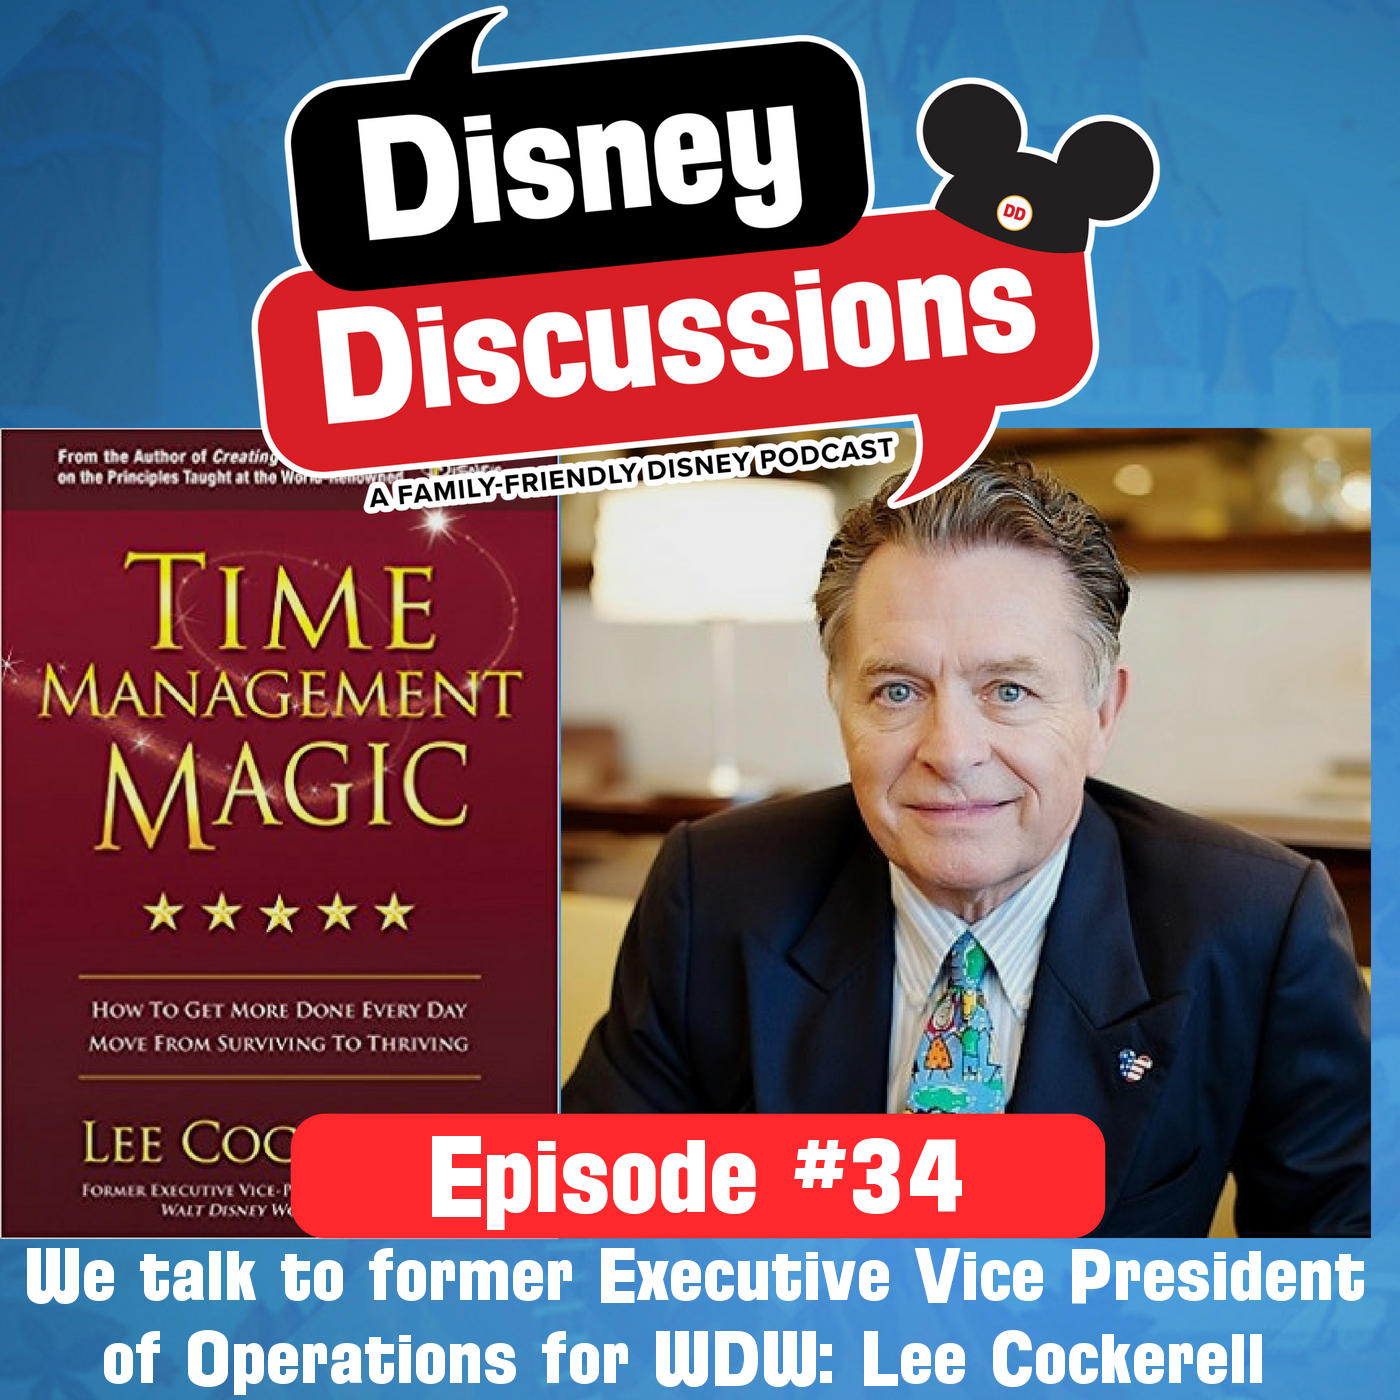 We interview Lee Cockerell the former Executive Vice President of Operations at Walt Disney World and more! - 34 - Disney Discussions